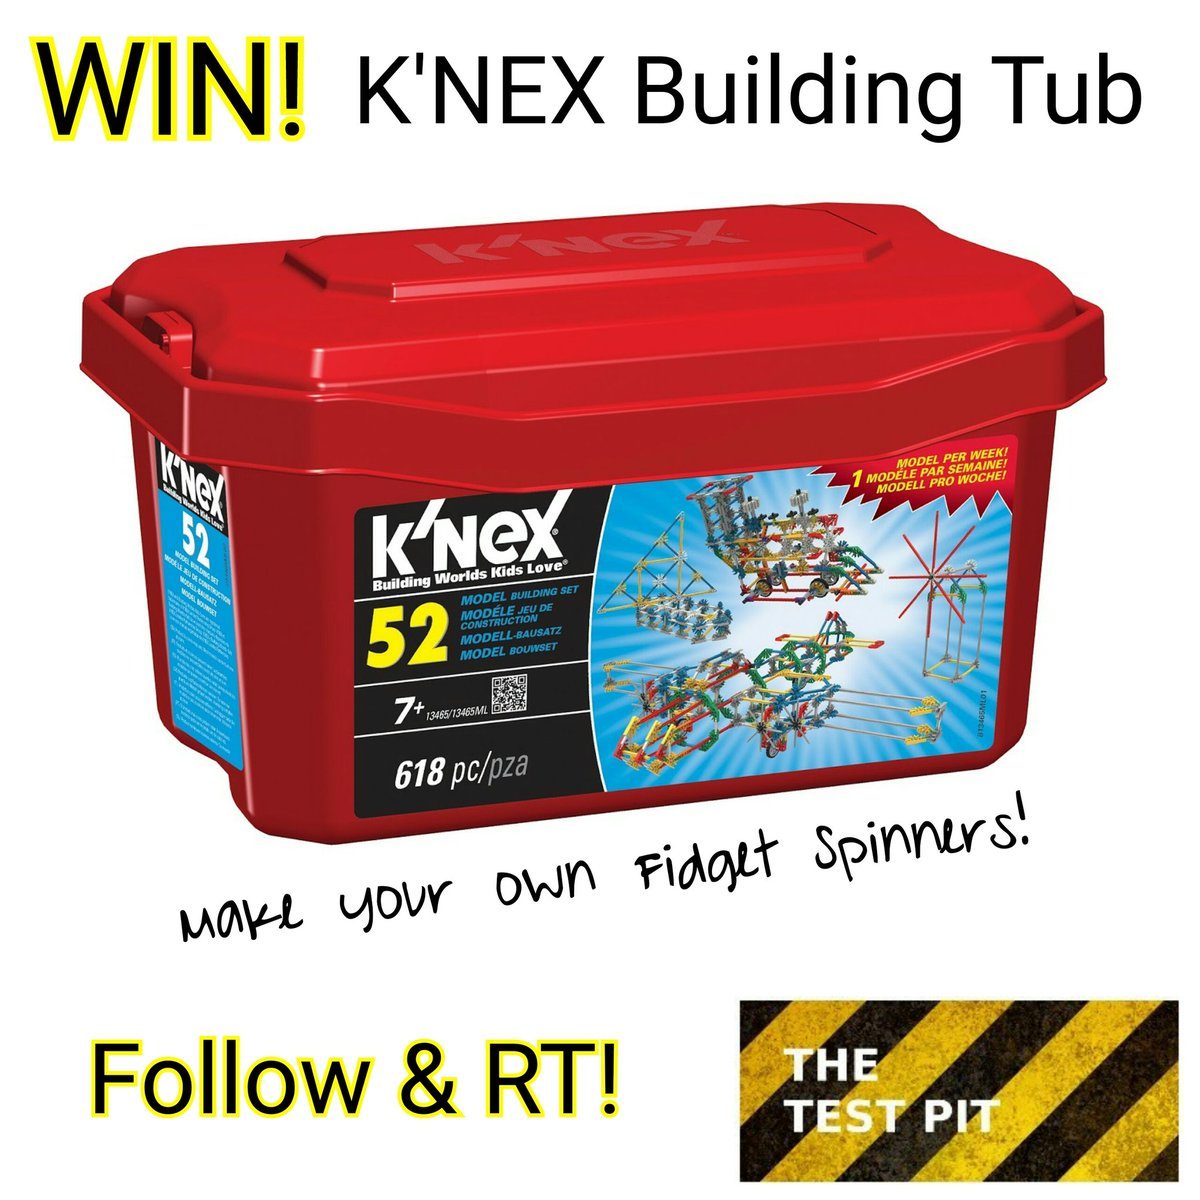 Kids into #fidgetspinners? Let them build their own, if you #win our latest @KNEXUK #competition. Follow &amp; RT!  http://www. thetestpit.com/2017/05/compet ition-win-knex-to-make-fidget.html &nbsp; … <br>http://pic.twitter.com/Y3T4FU7vgP